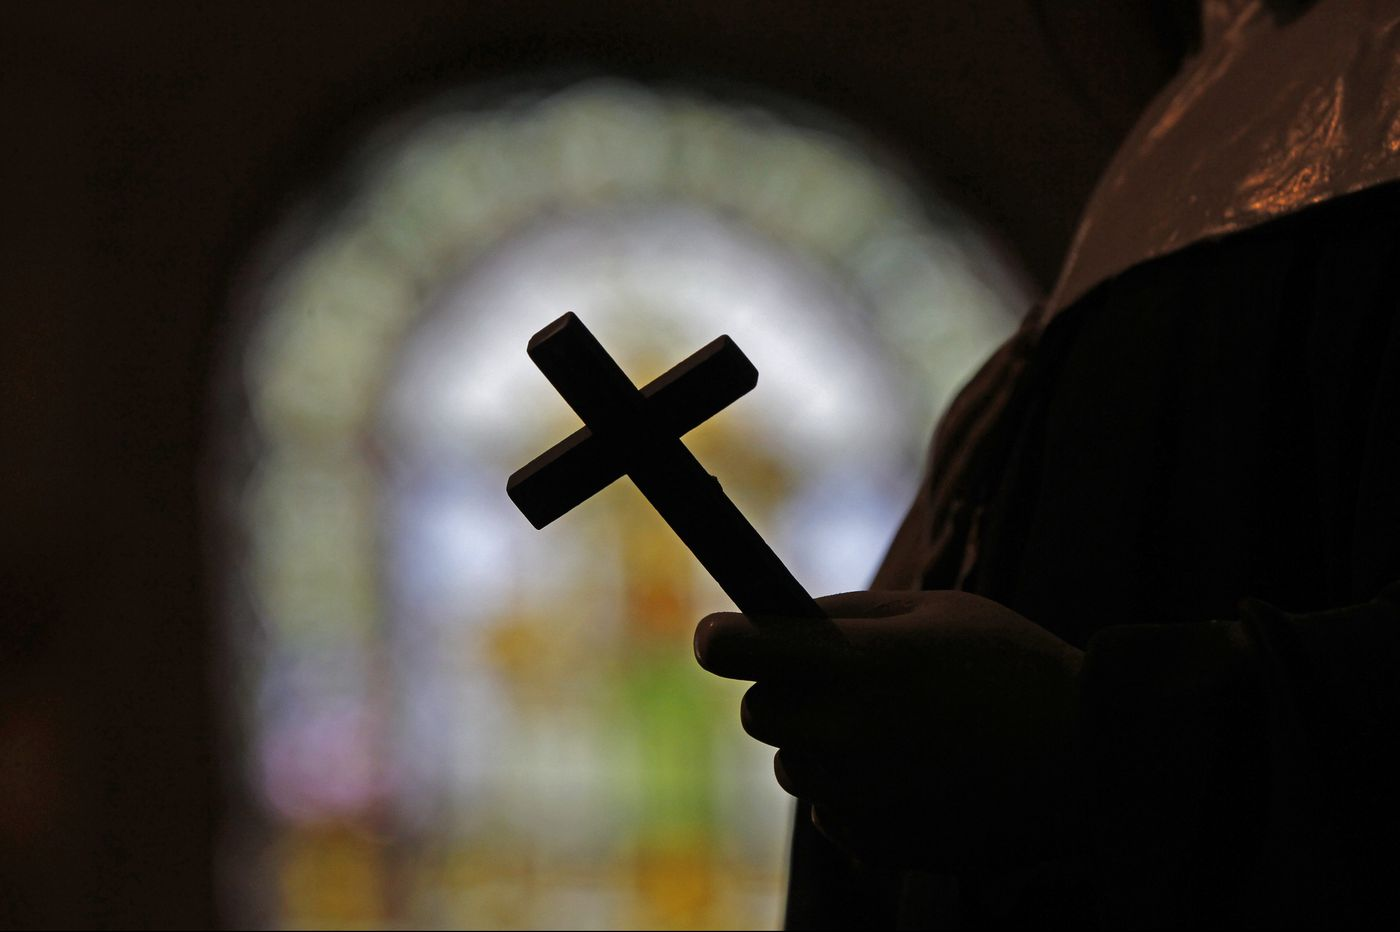 Pennsylvania diocese sued over priest named in probe